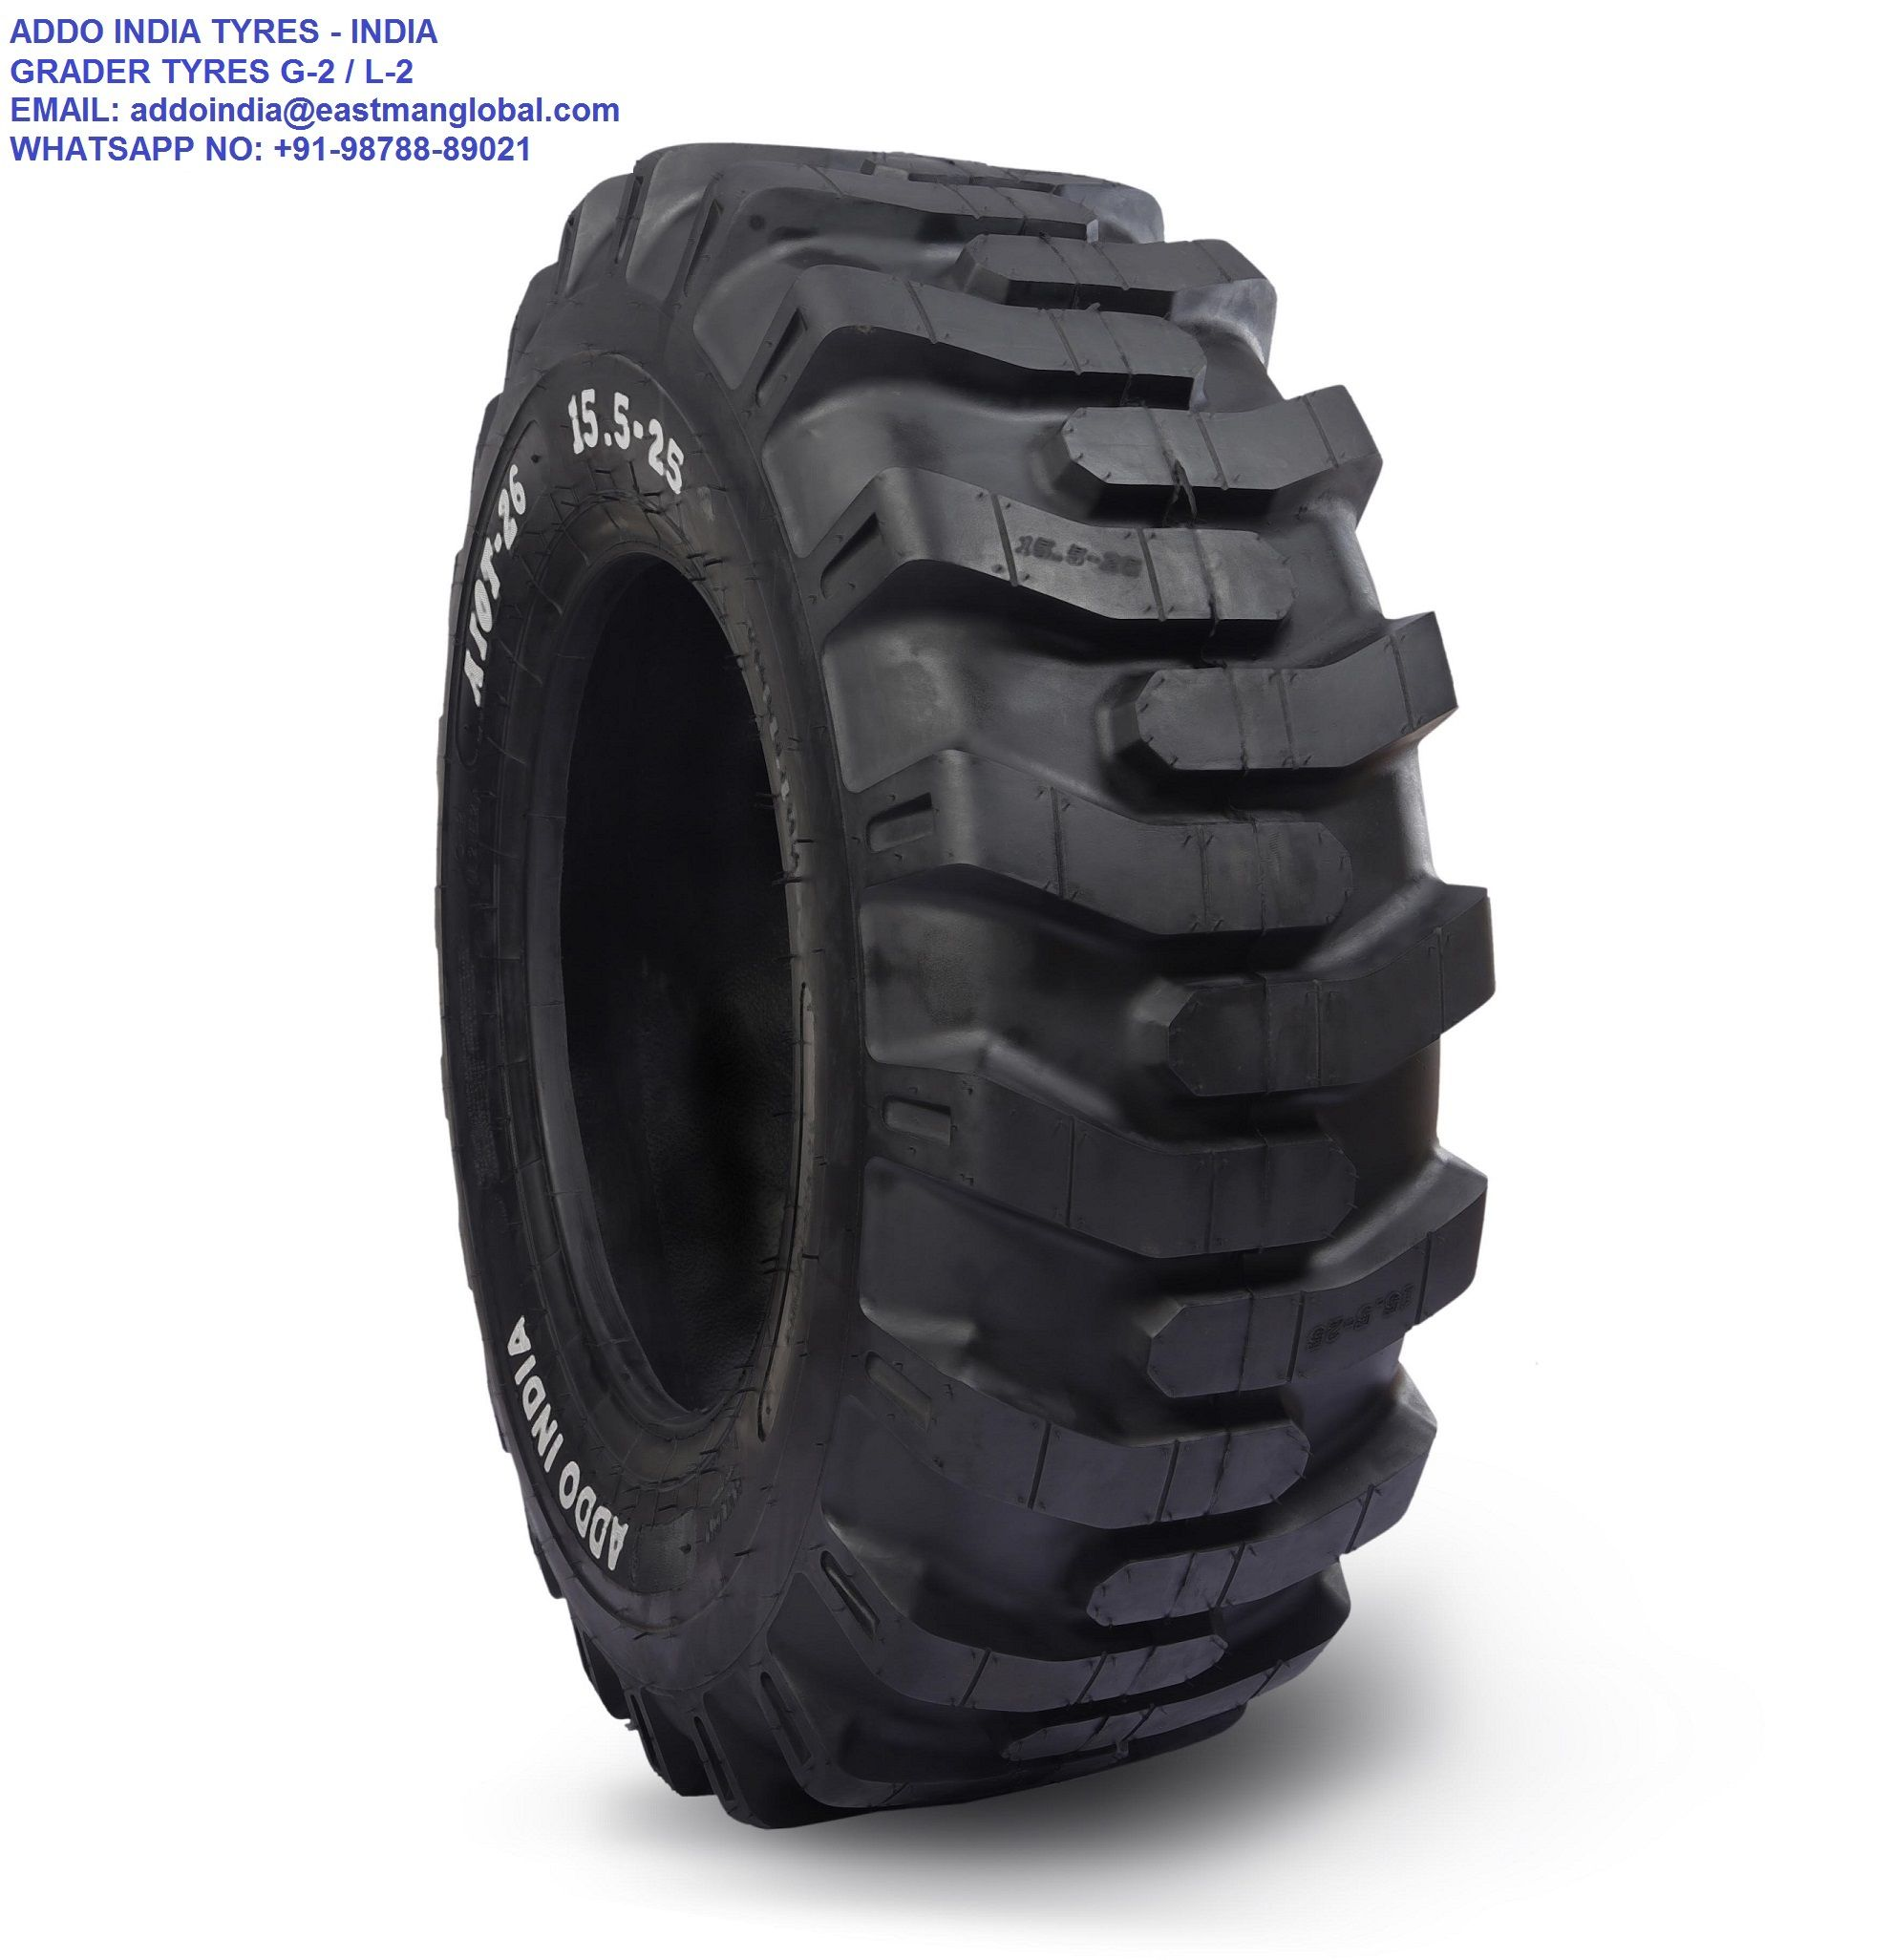 Addo India Grader G 2 L 2 Tyres From India Truck Tyres Monster Trucks Truck Lights